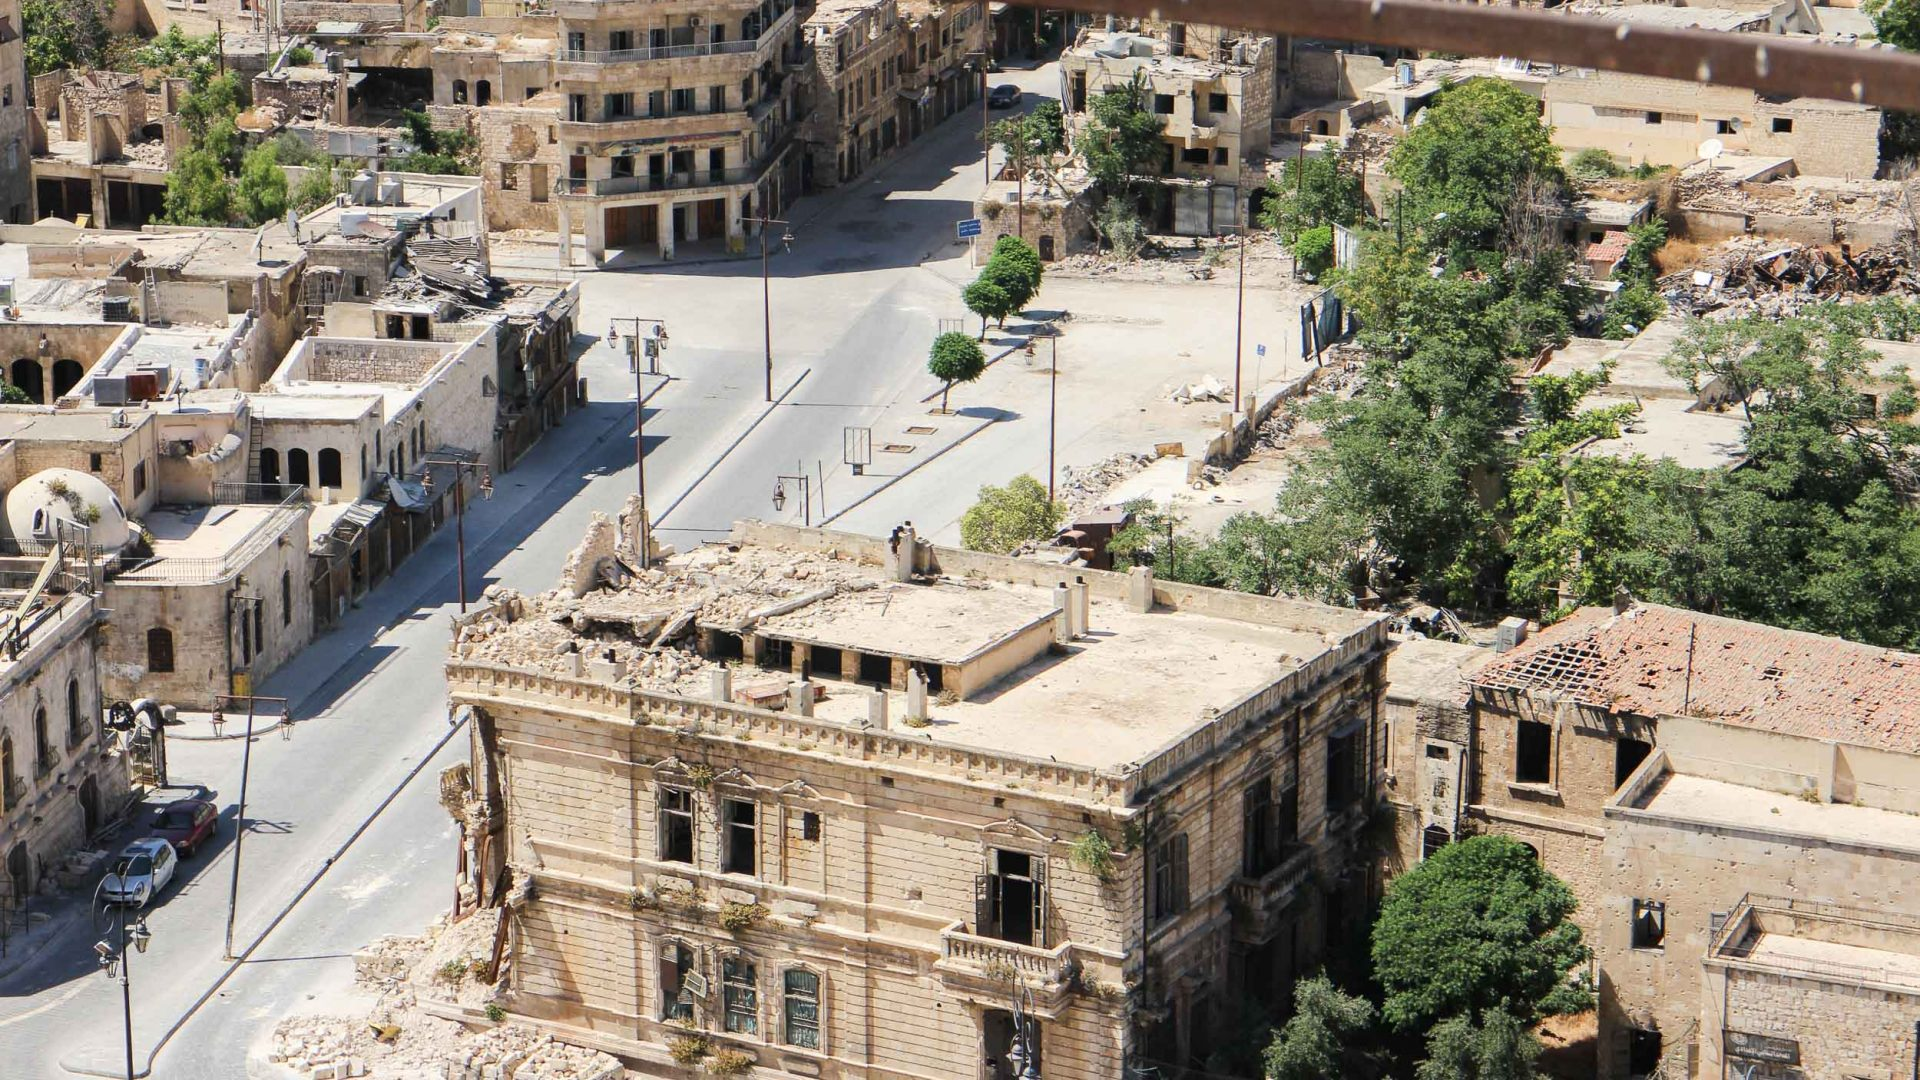 Views down over Aleppo in Syria which has been badly damaged by the war with IS.